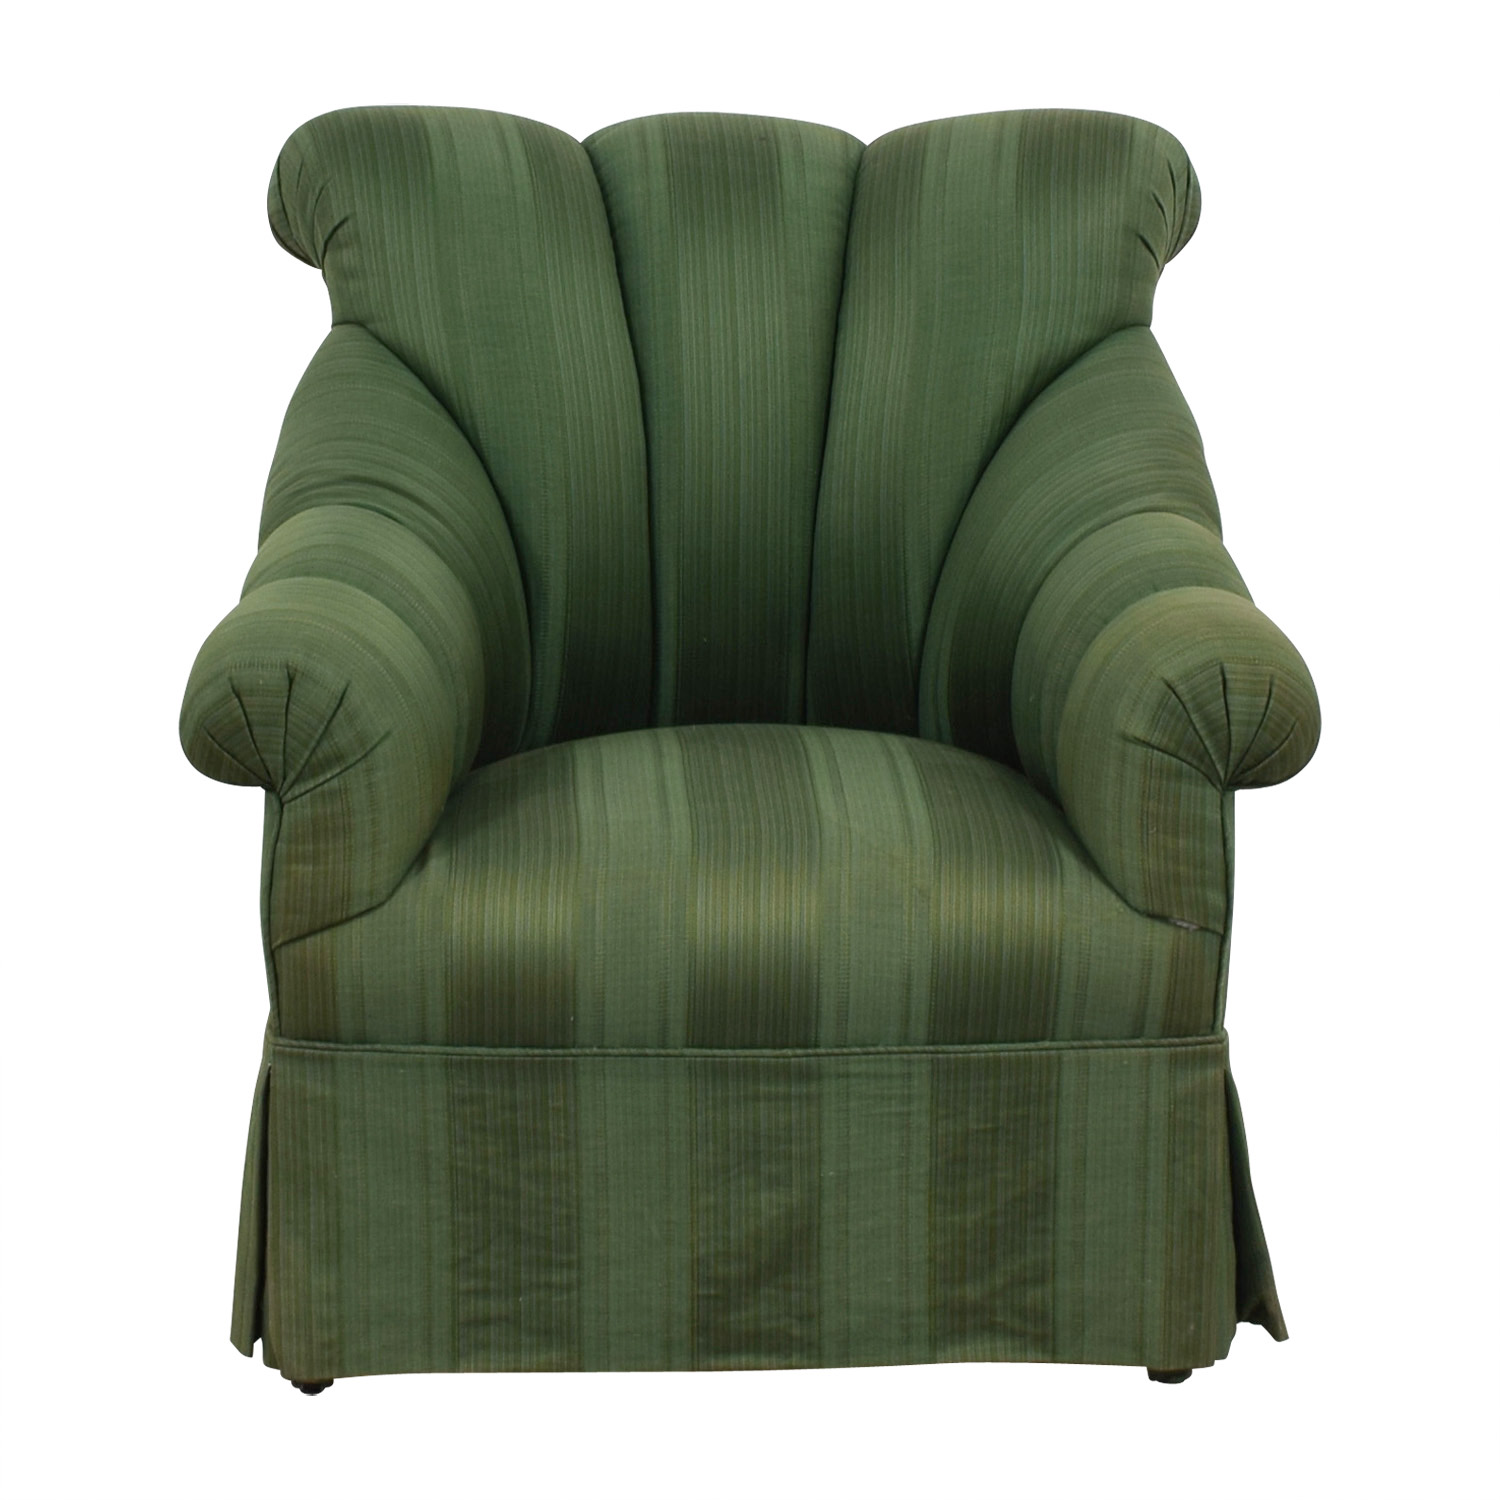 Furniture Masters Furniture Masters Dark Green Skirted Armchair second hand